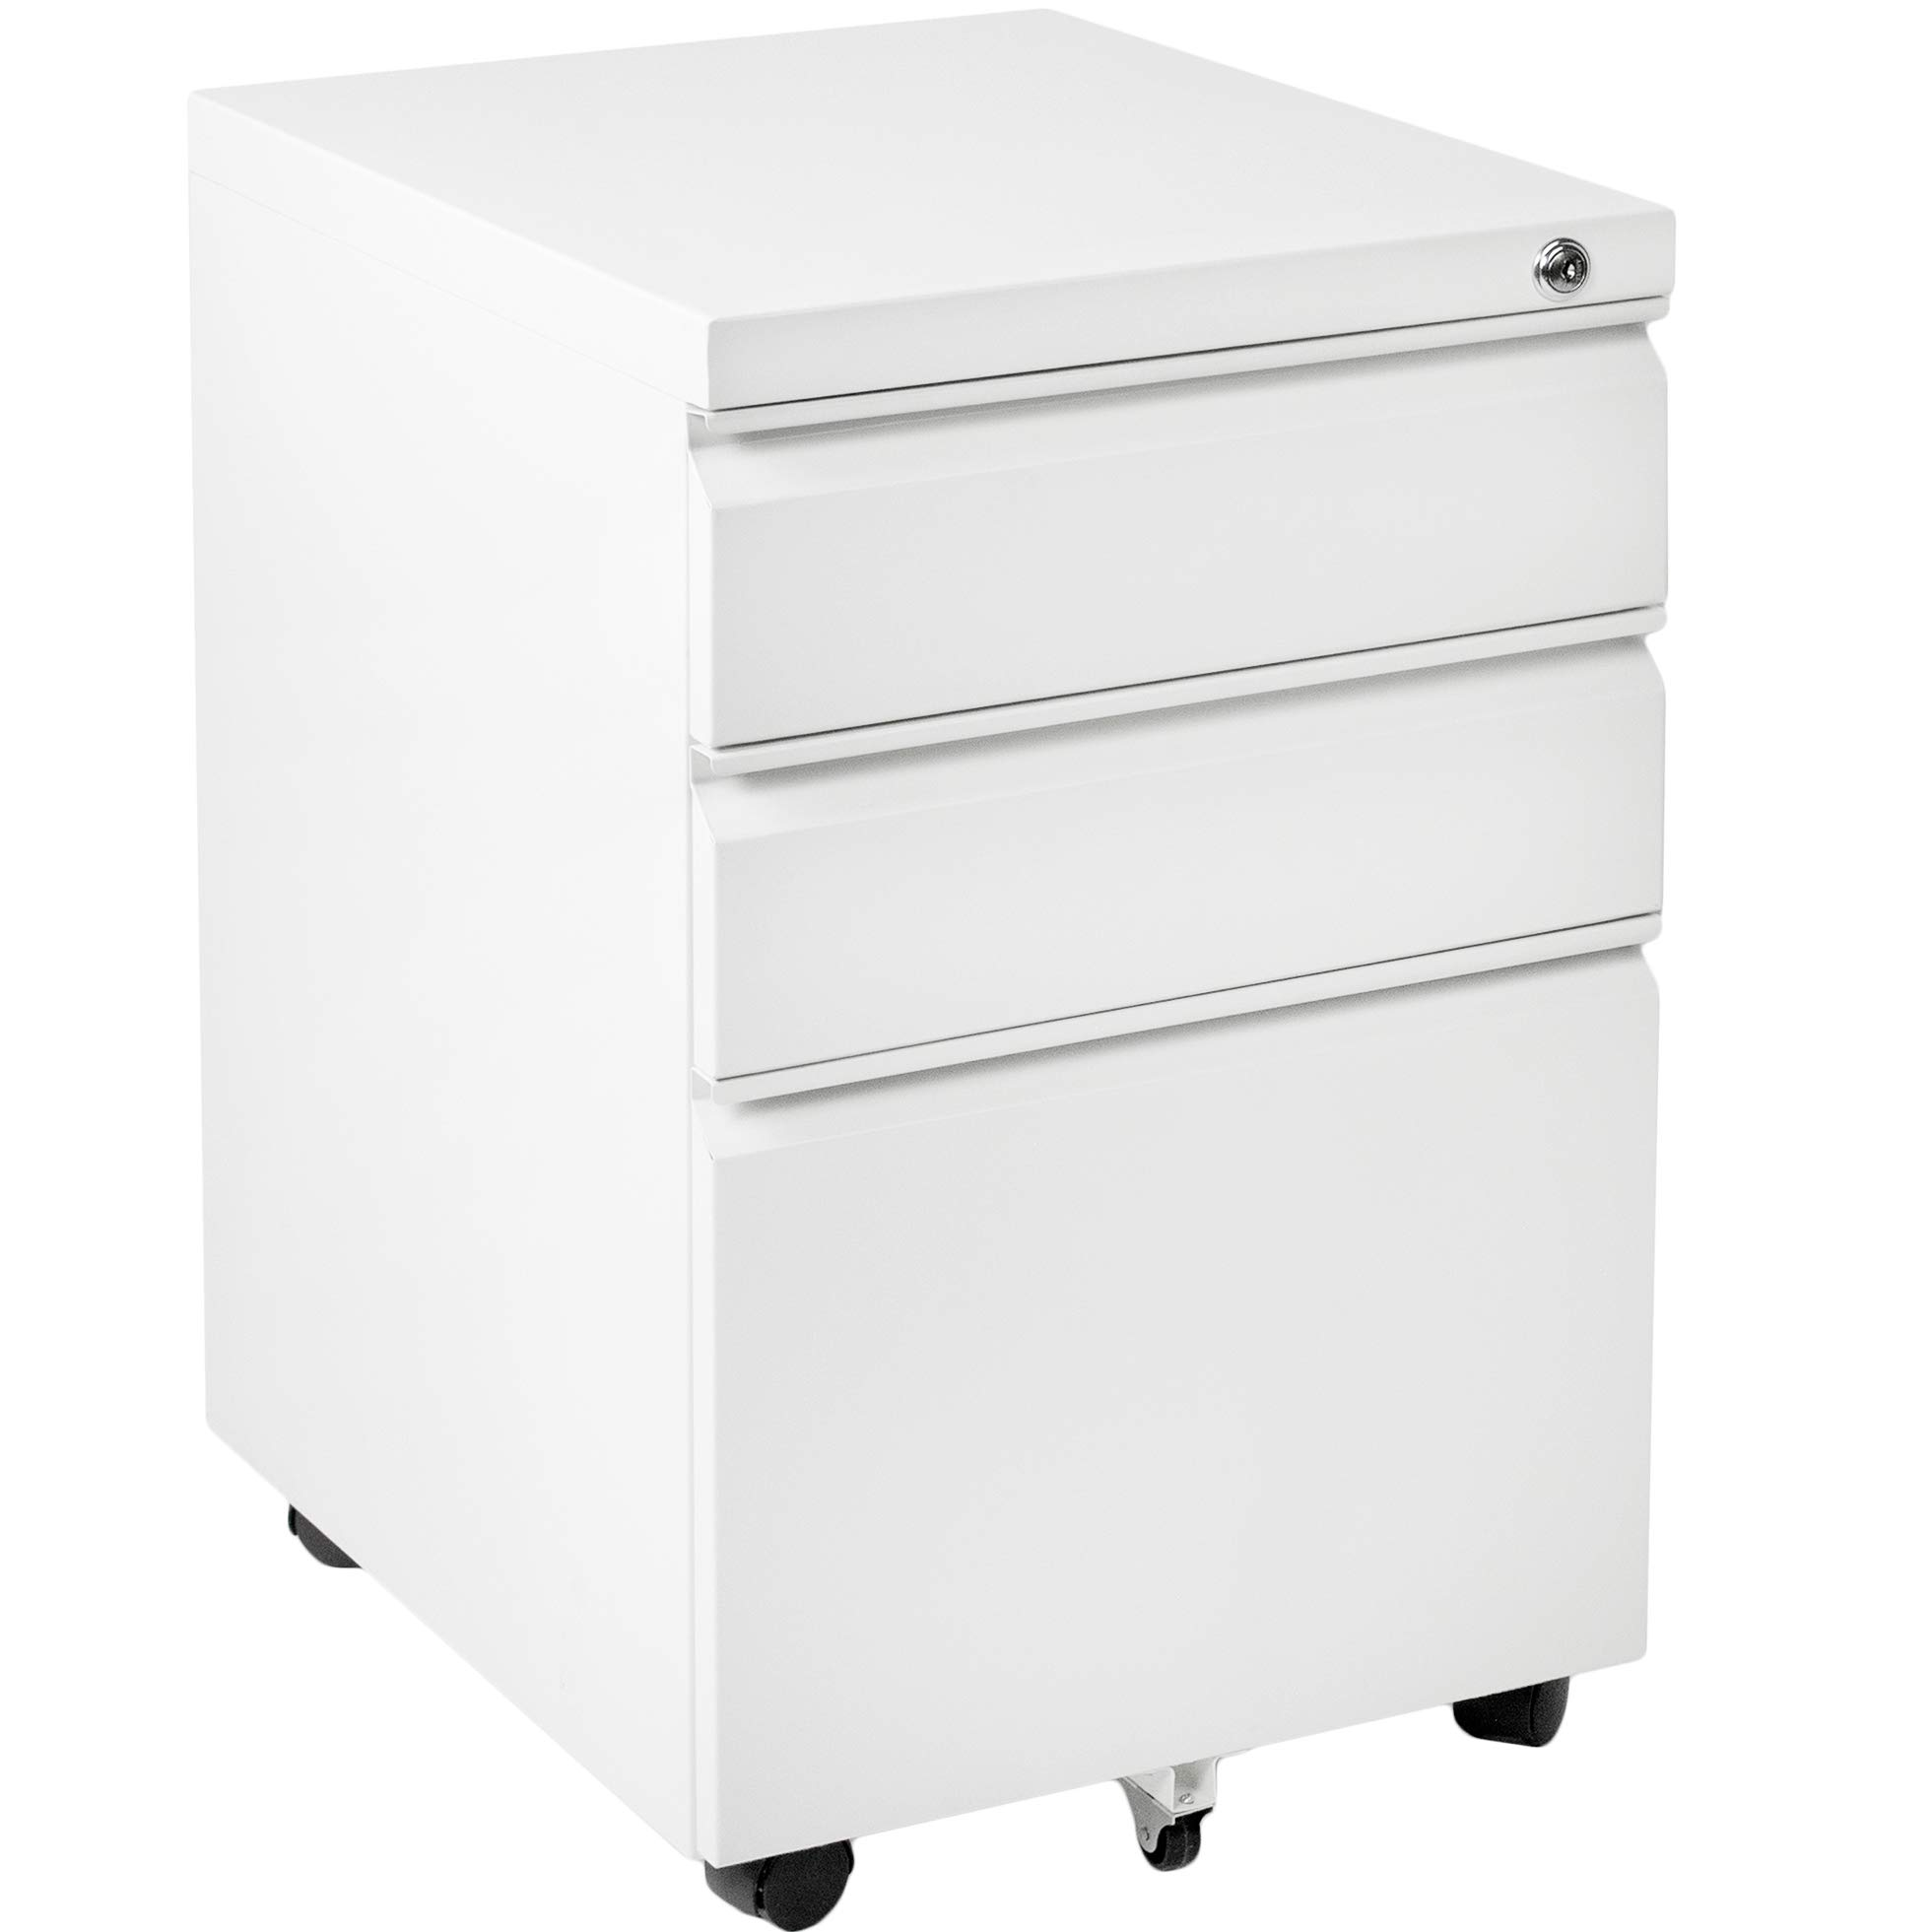 VIVO White Steel 3 Drawer Mobile Office File Cabinet with Lock | Rolling Pedestal Storage Cabinet on Wheels (FILE-MB01W) by VIVO